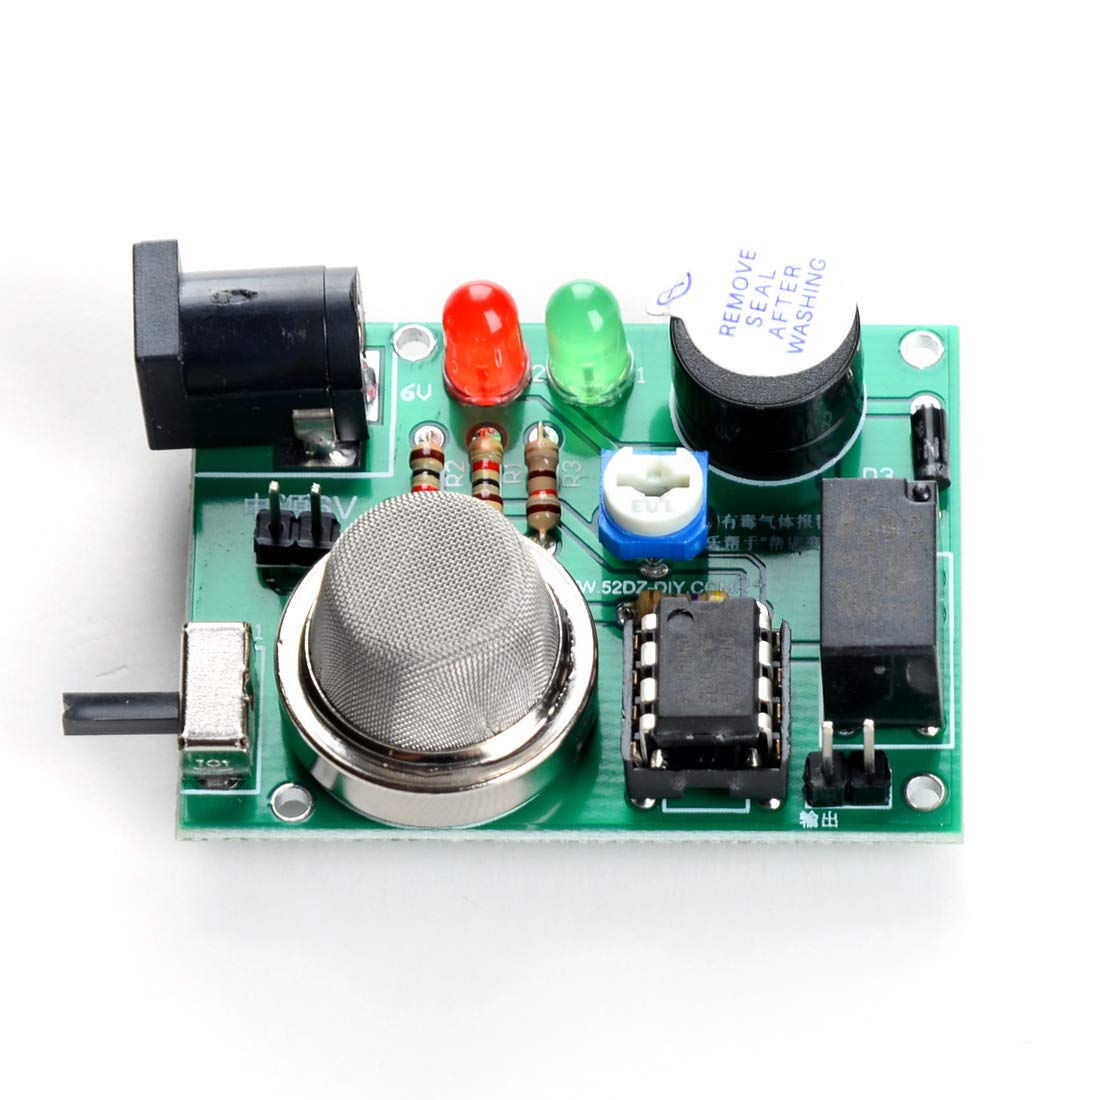 Amazon.com: DDIY Toxic Gas Detector Soldering Project Electronic Project Kit DIY Parts Beginners Learning Adjustable Welding Assemble: Toys & Games